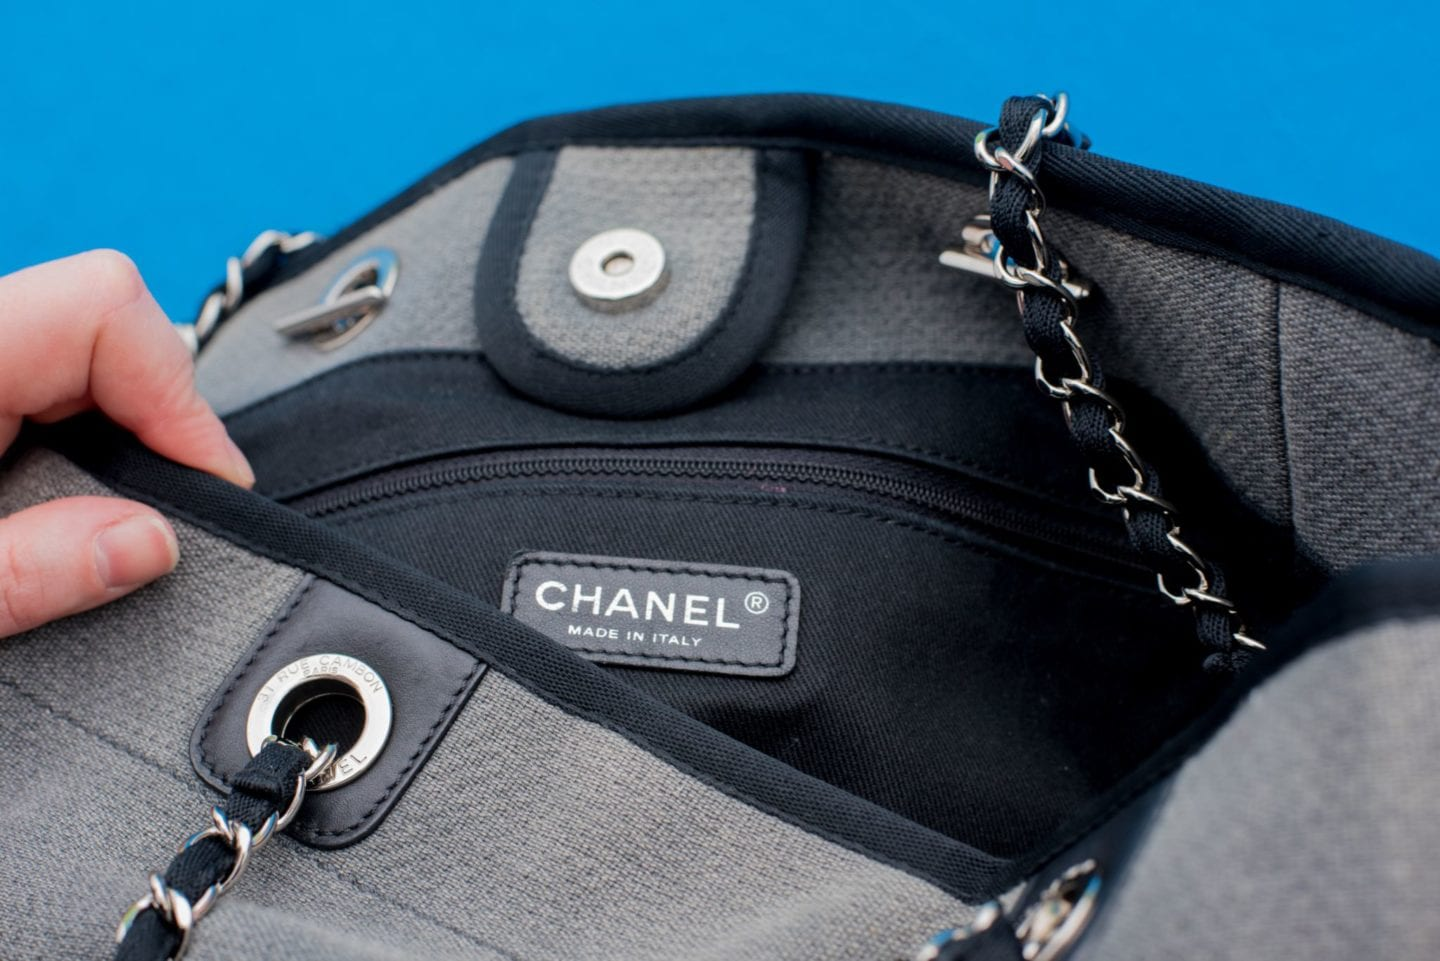 Chanel Deauville Tote Bag detail grey canvas tote bag branding